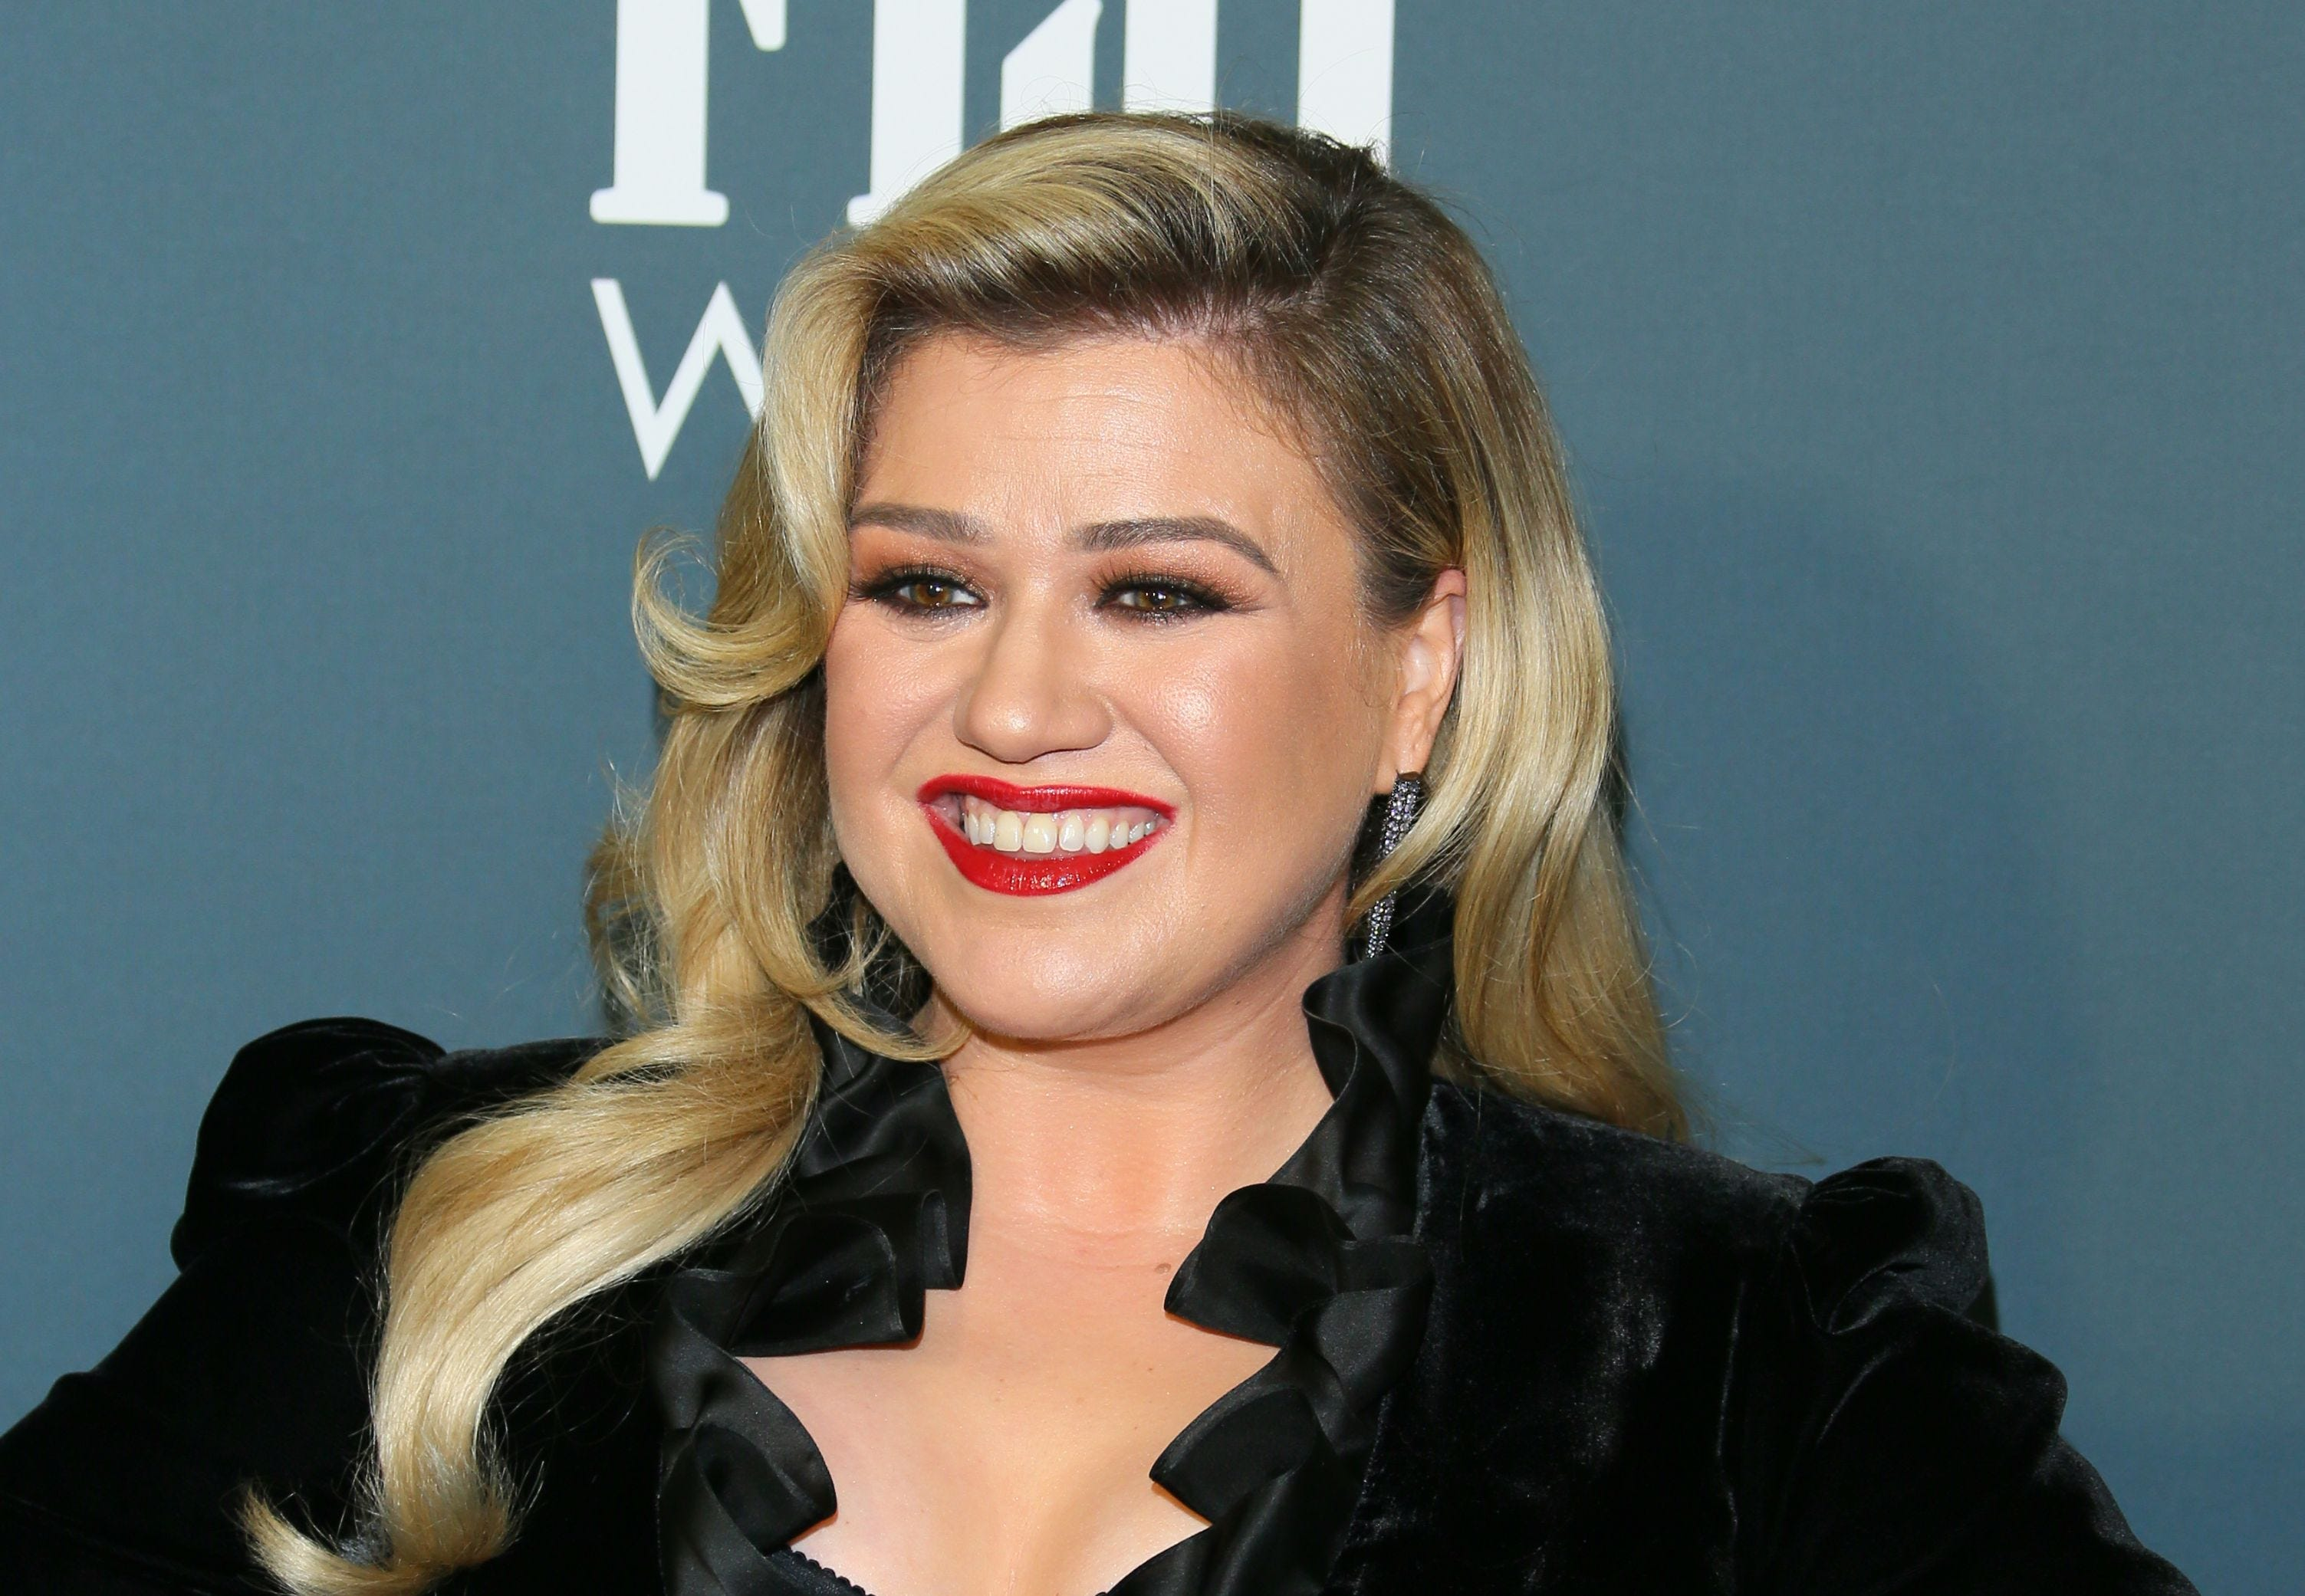 Kelly Clarkson to host the 2020 Billboard Music Awards for third time in a row